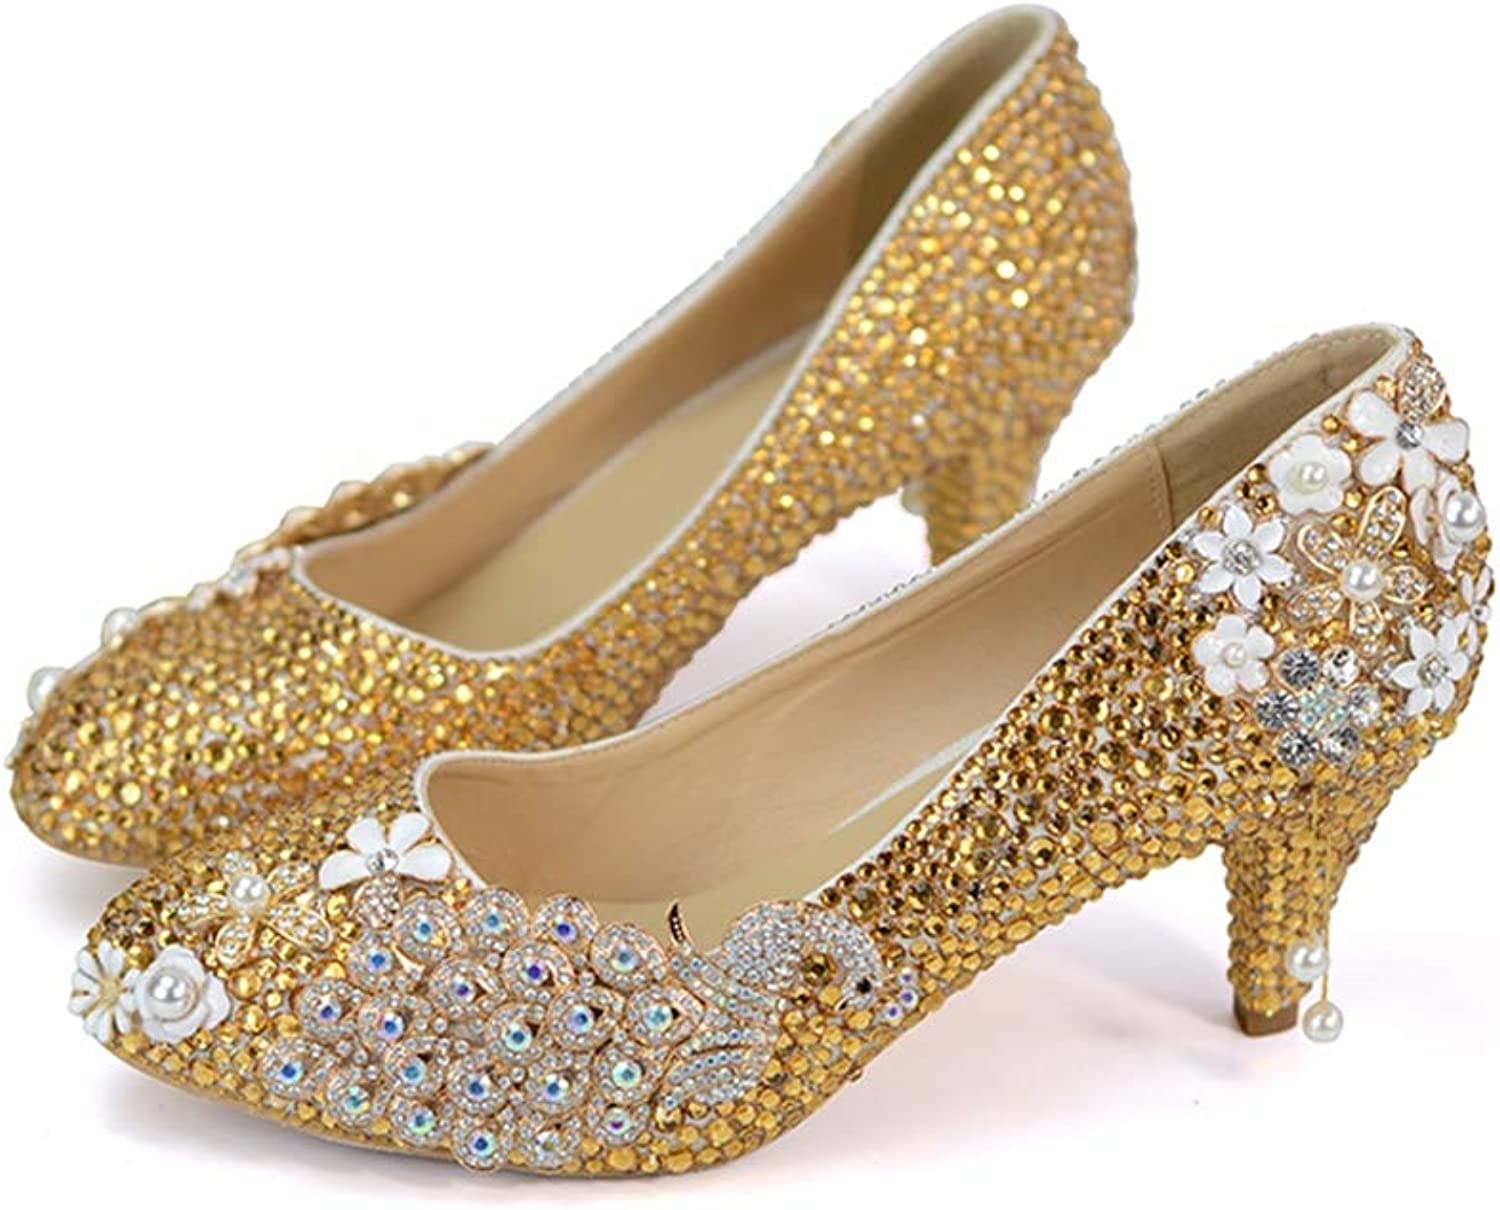 Sparrow Rhinestone Pumps Wedding Party shoes Pointed Toe Graduation Prom Dancing shoes Mother of Bride shoes